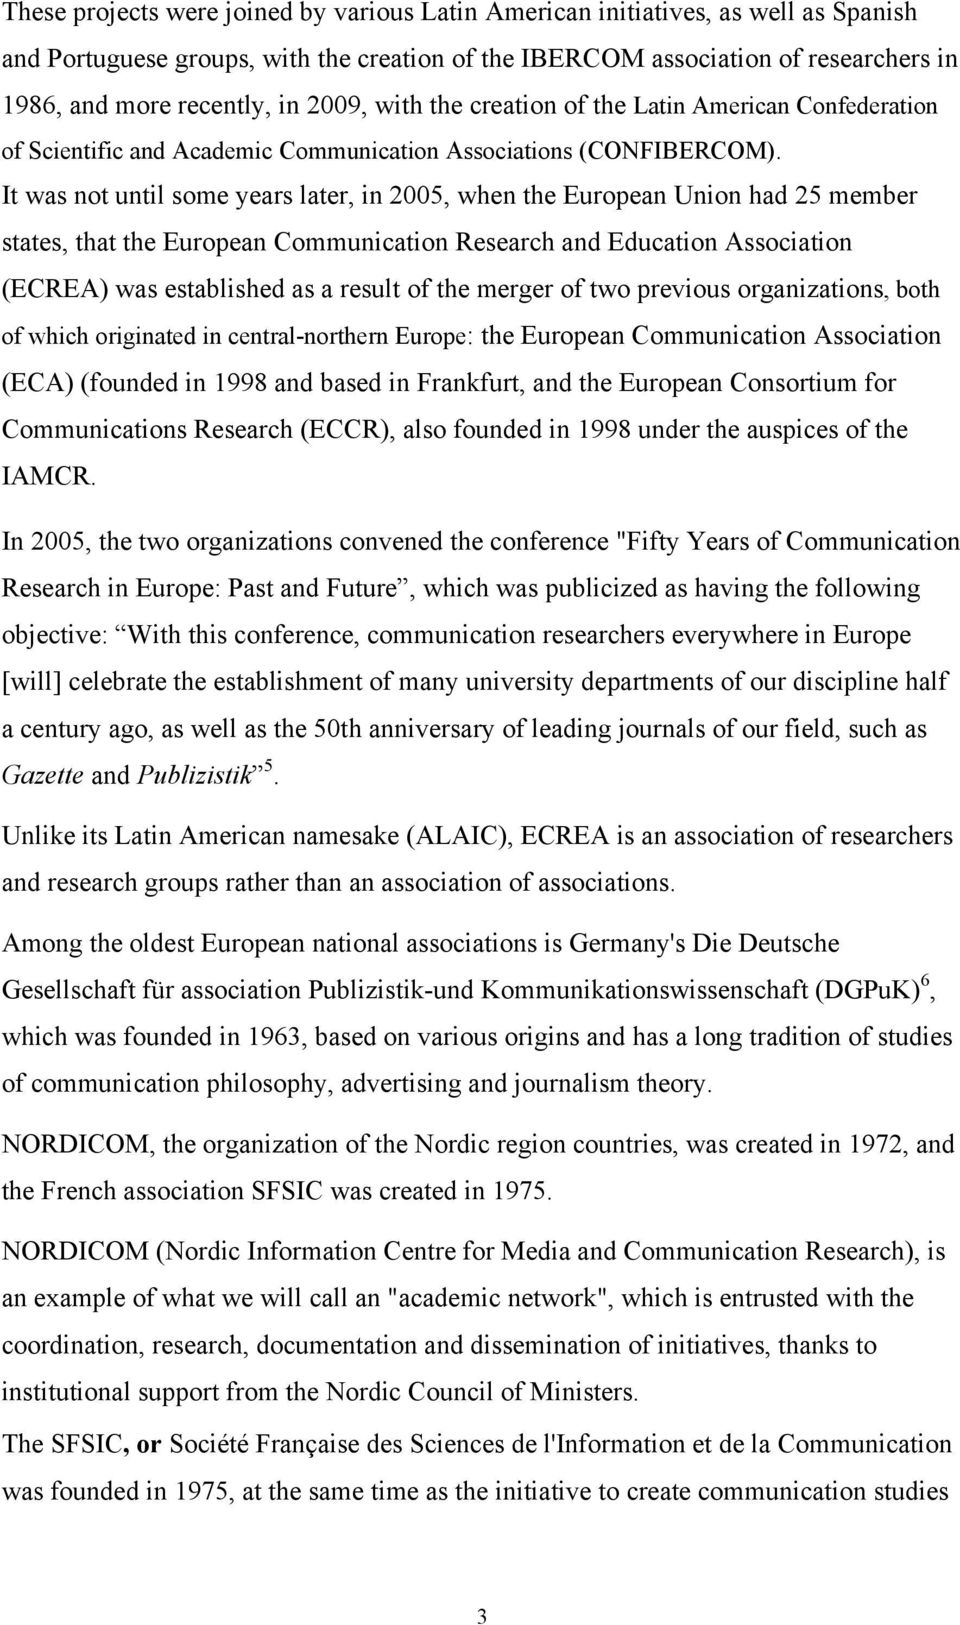 It was not until some years later, in 2005, when the European Union had 25 member states, that the European Communication Research and Education Association (ECREA) was established as a result of the